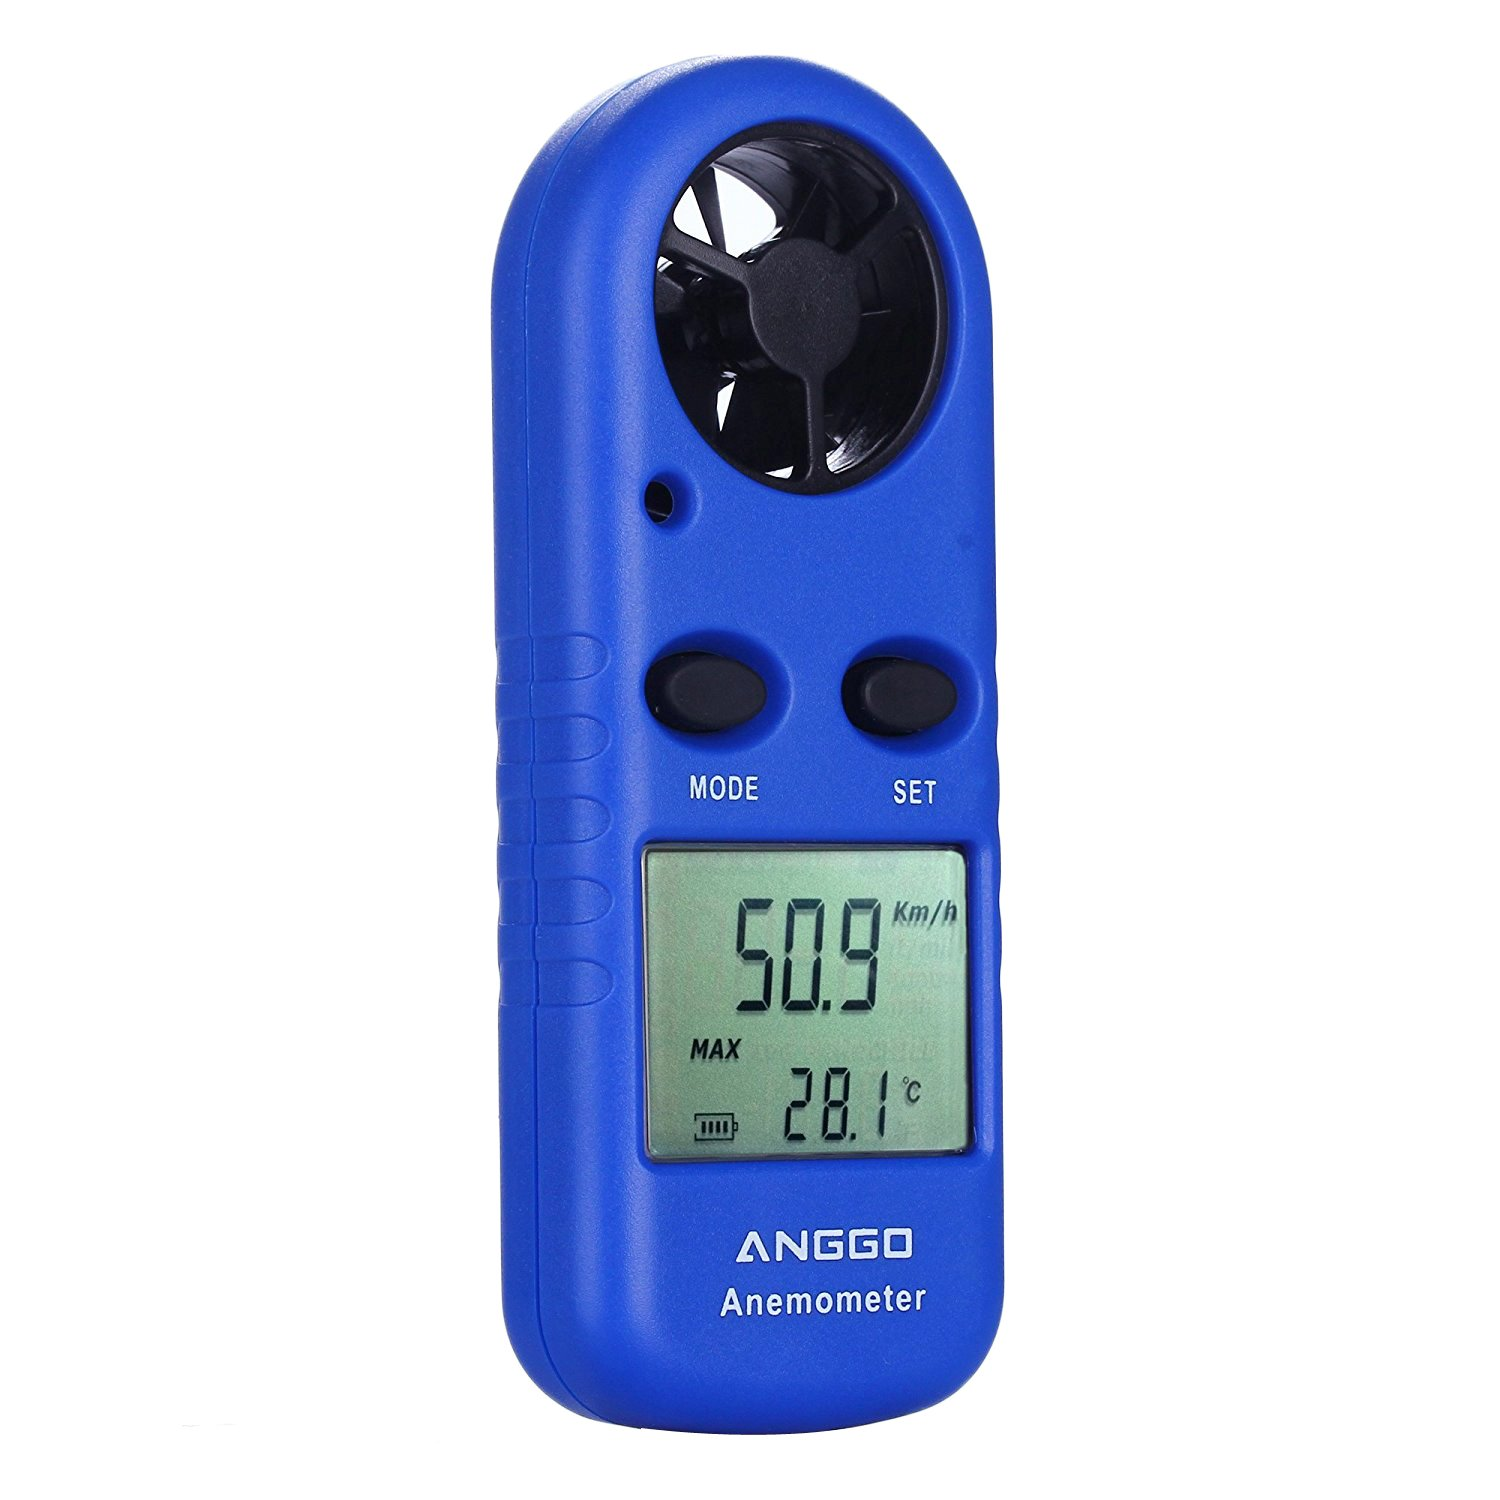 ANGGO Digital Wind Speed Anemometer with Thermometer for Personnal Camping Windsurfing Kite Flying Sailing Surfing . Ltd.